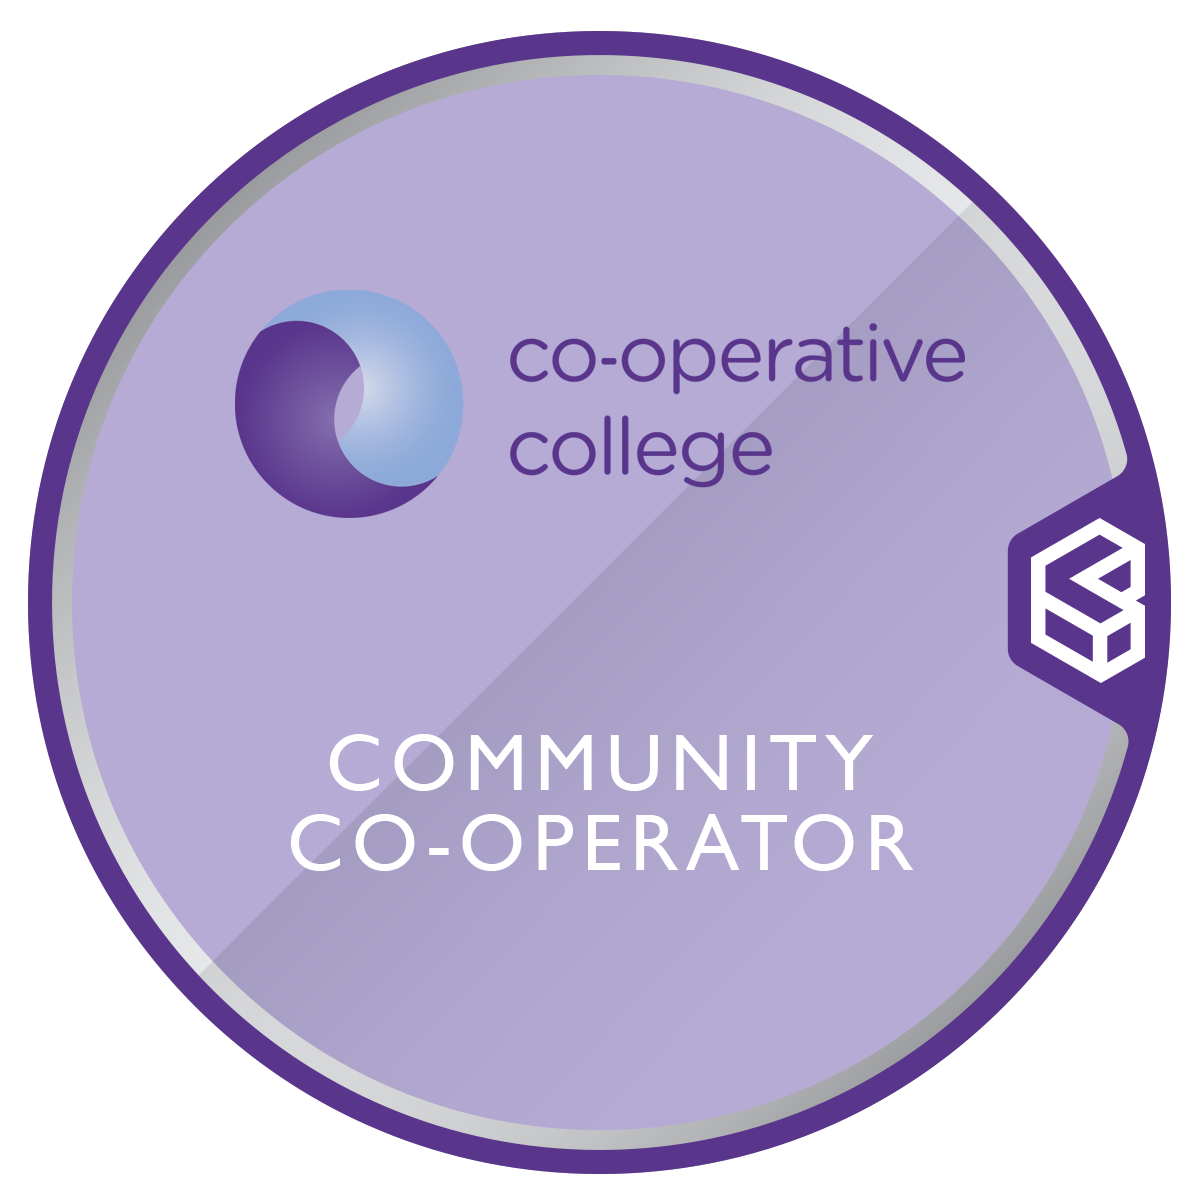 The Co-operative College : Youth Co-operative Action